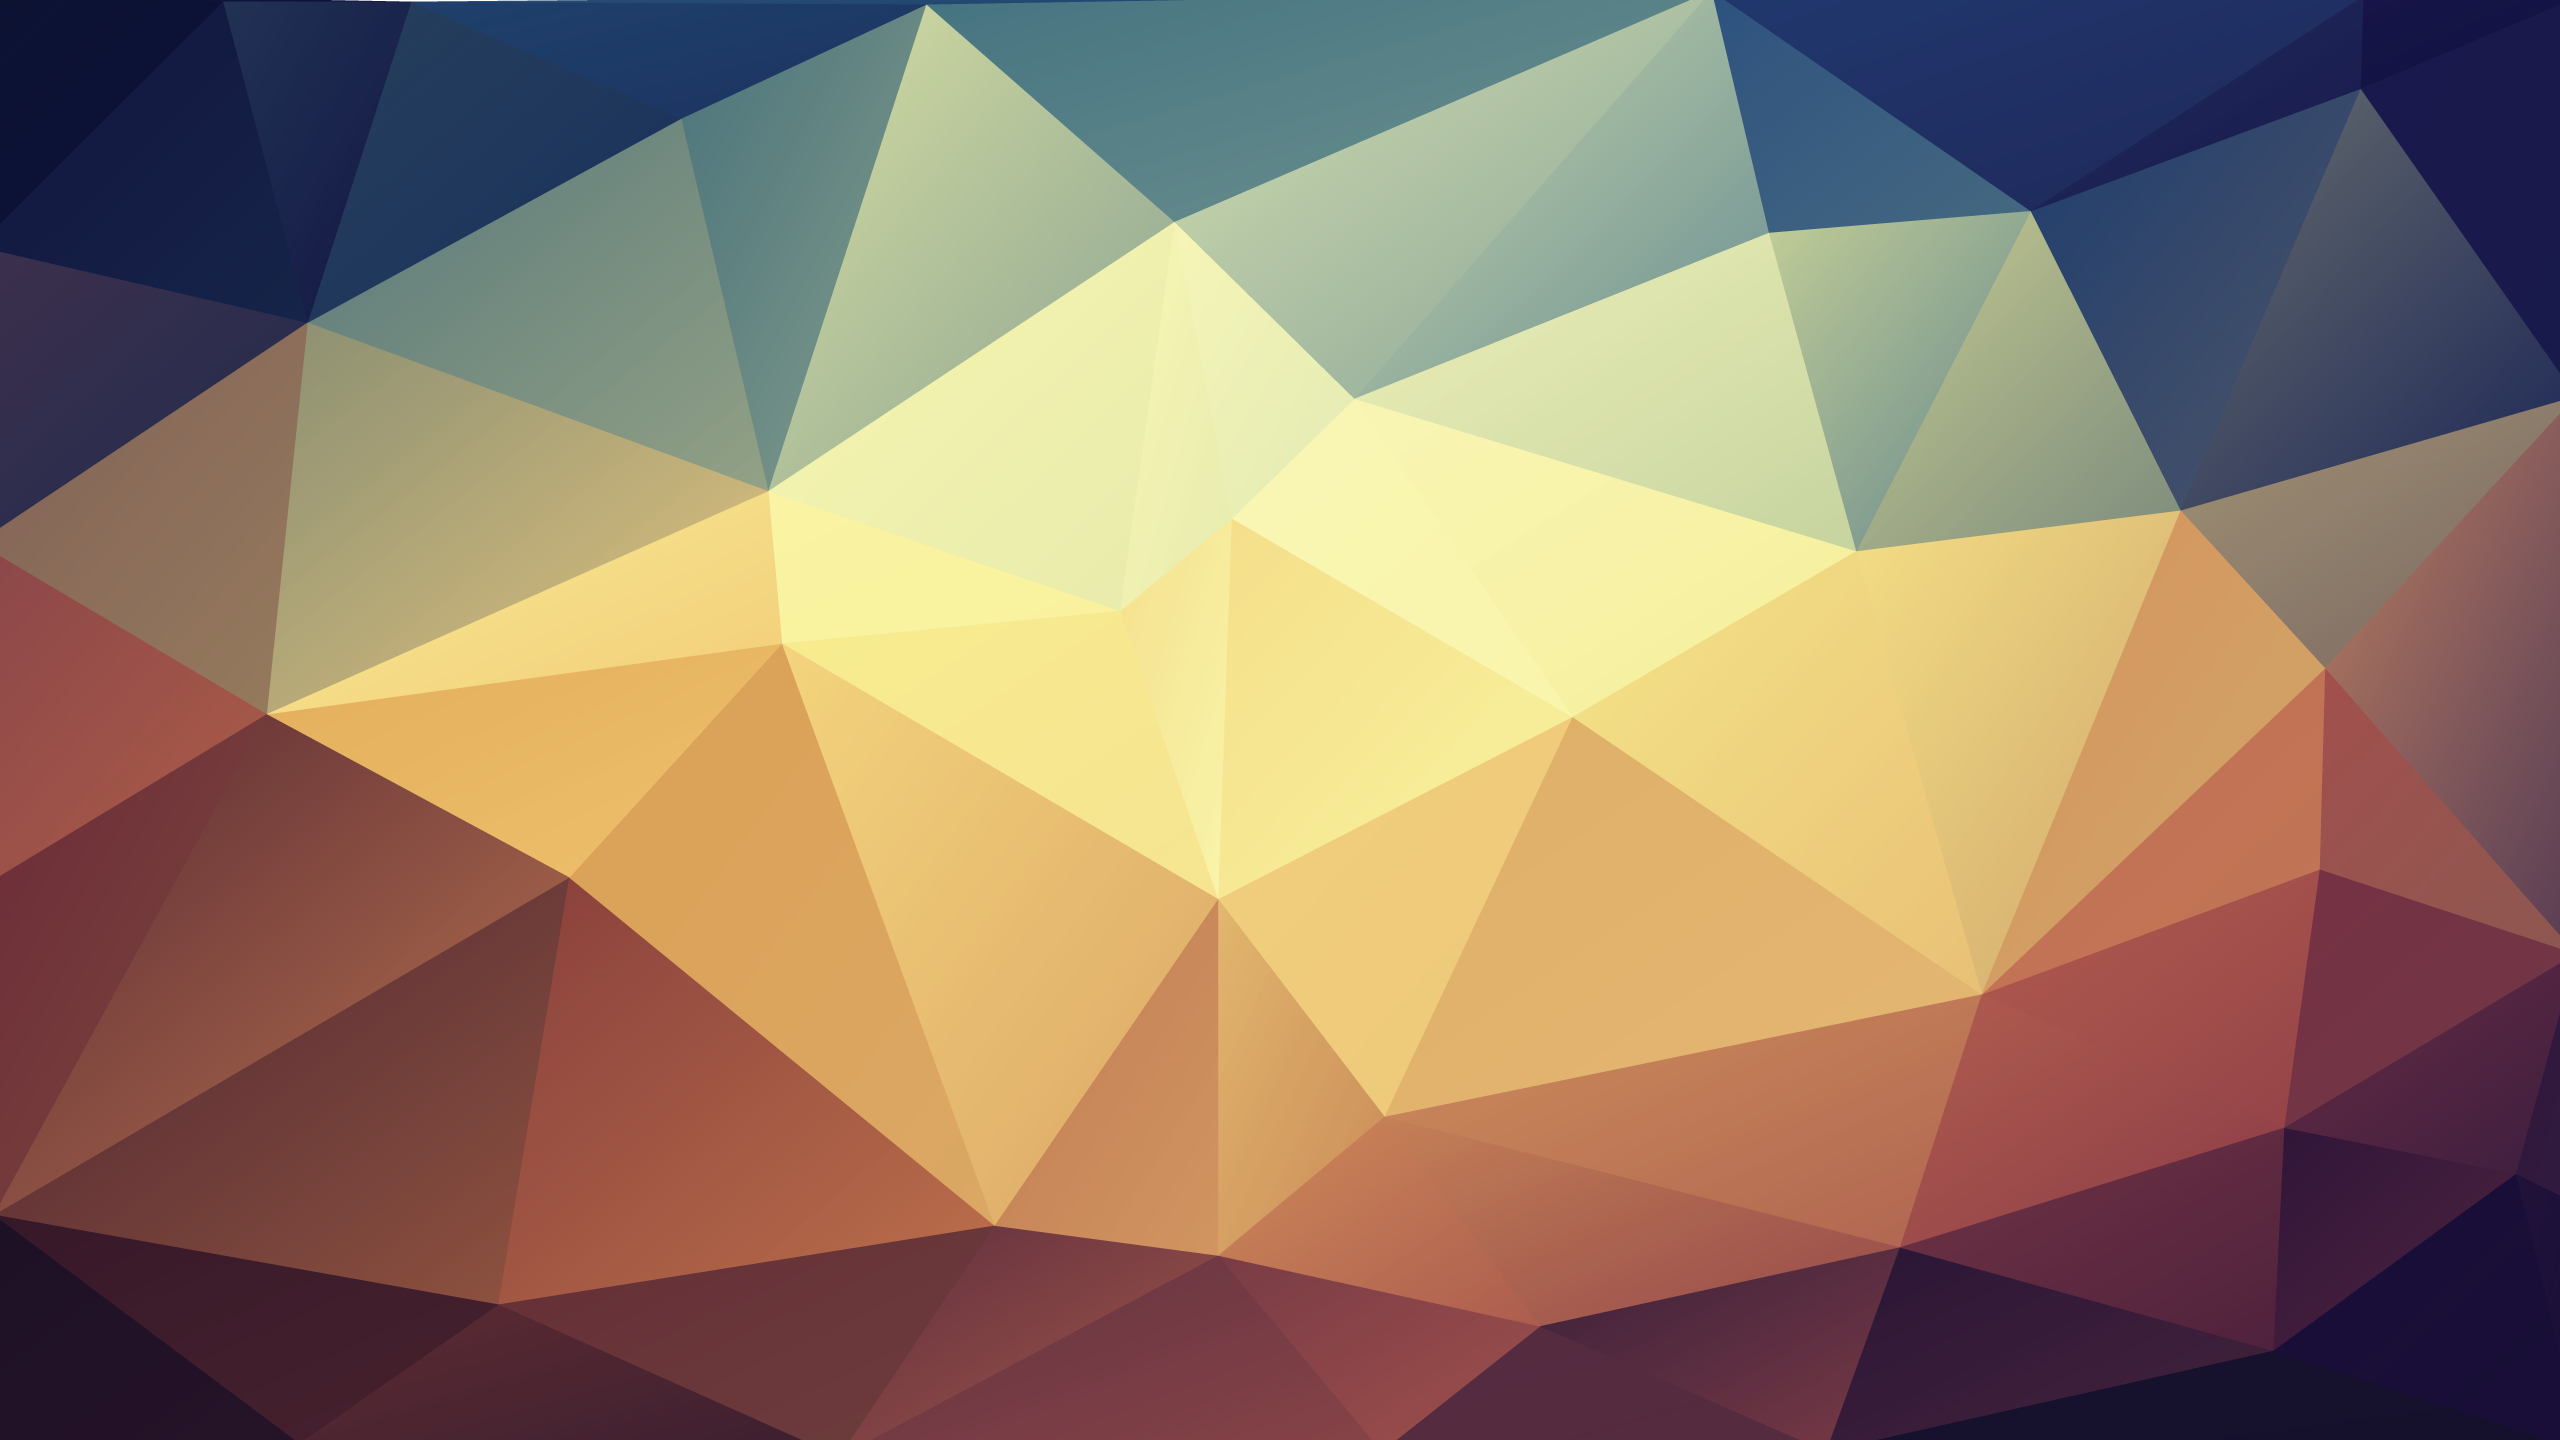 abstract low poly pattern